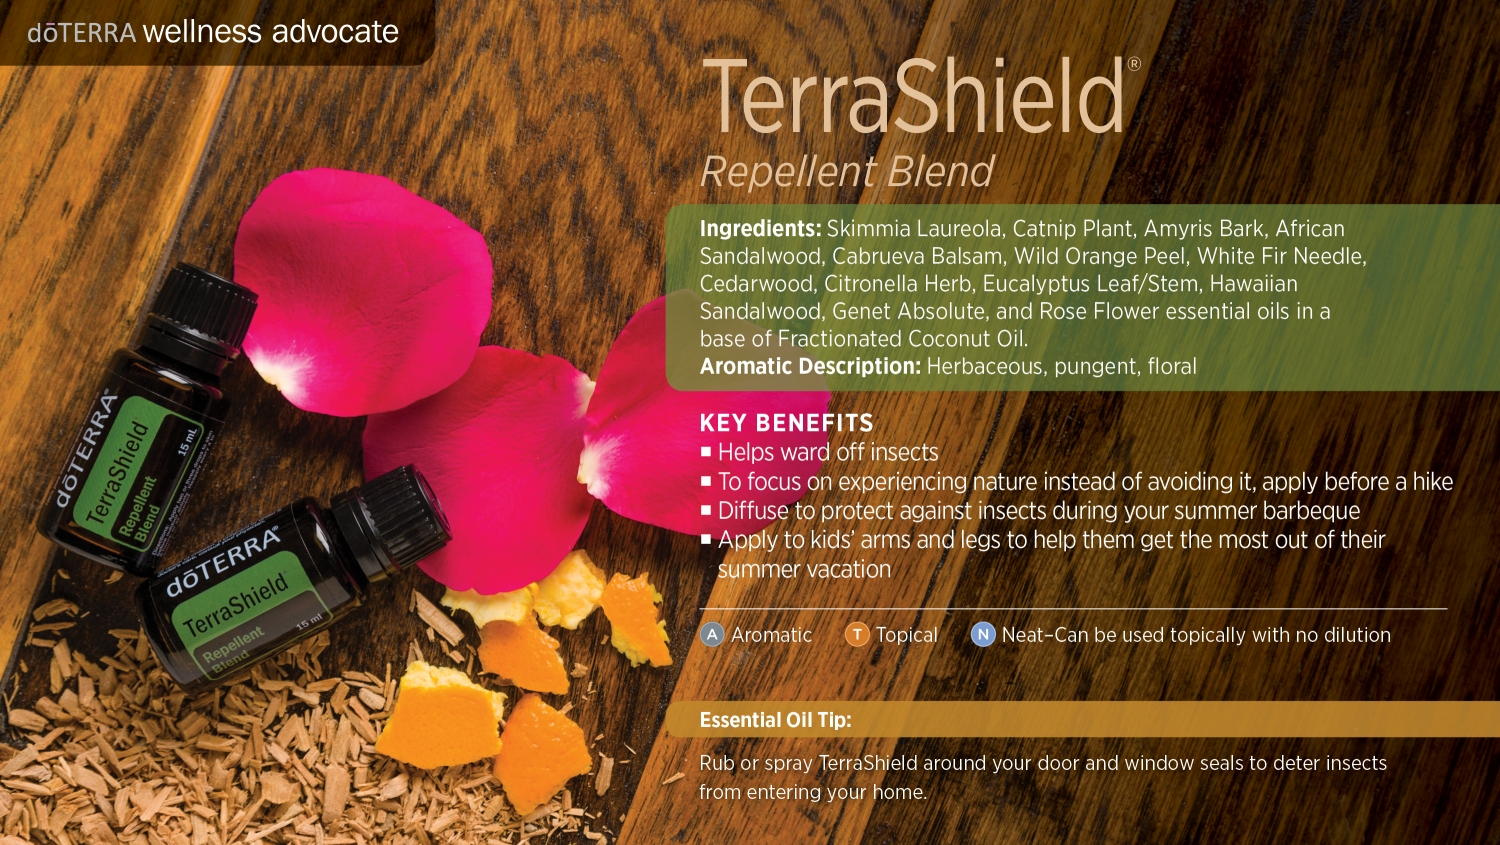 Doterra terrashield bug spray blend